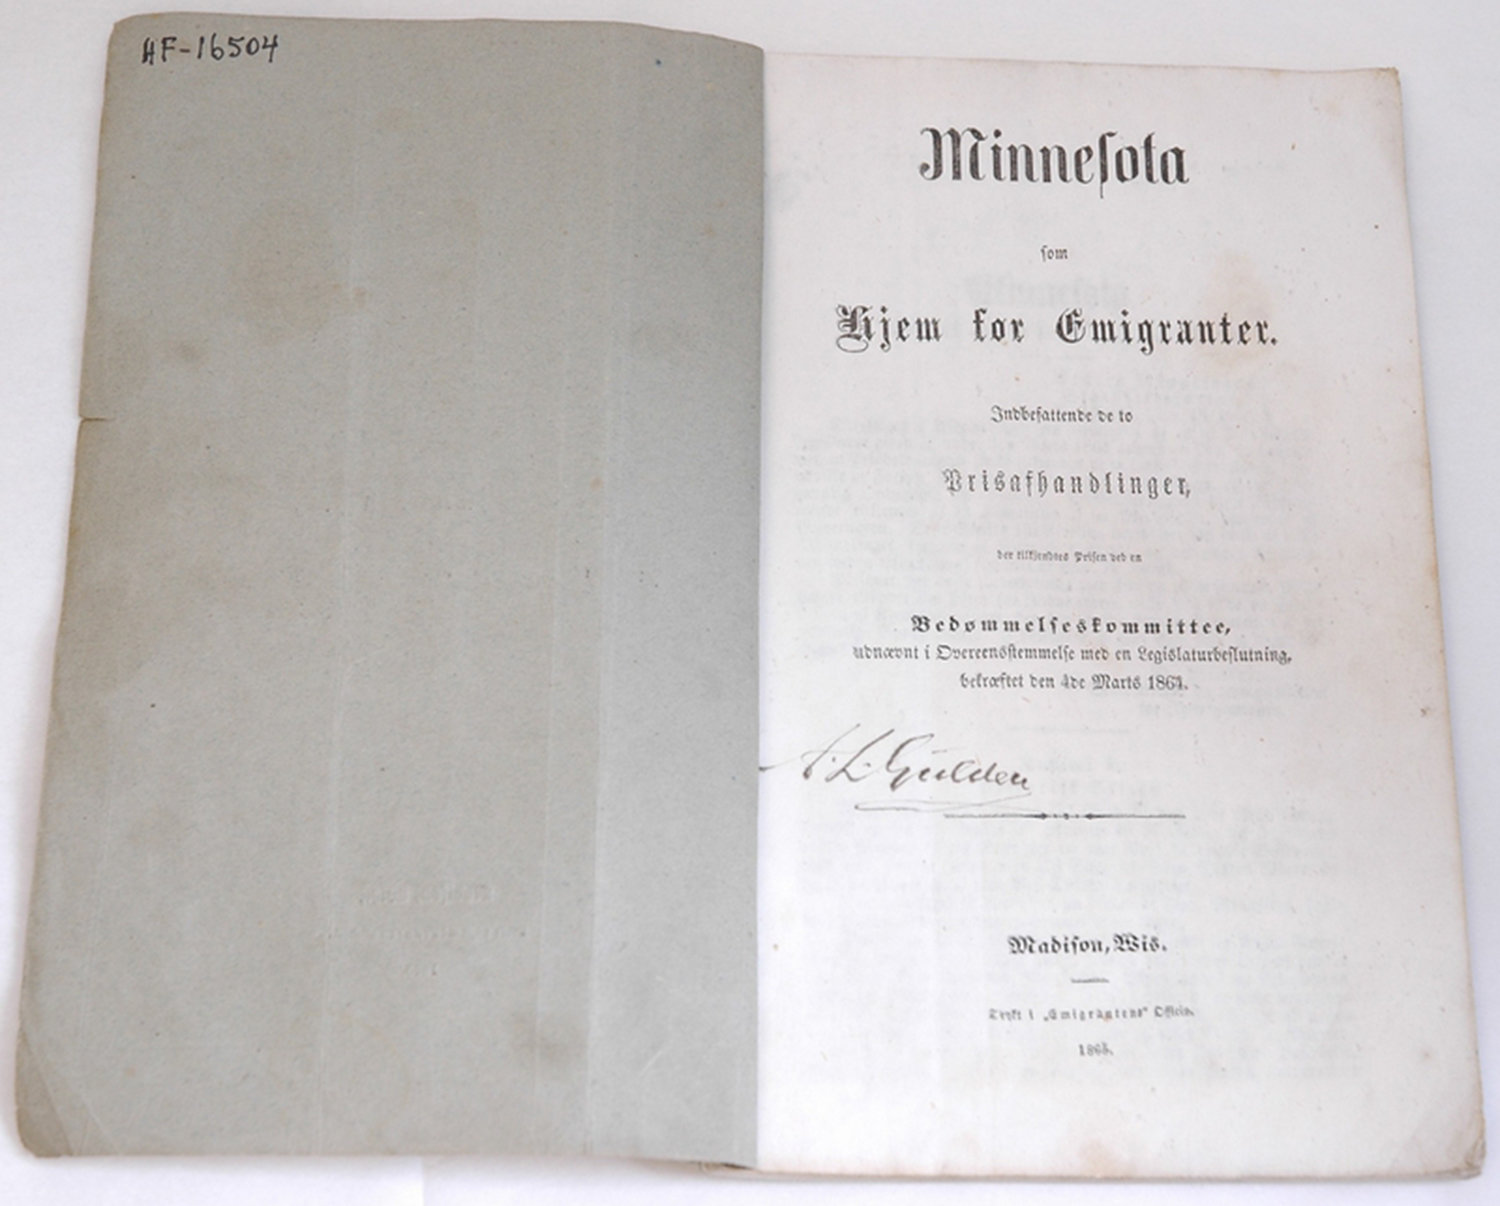 Minnesota as a Home for Emigrants - Minnesota som Hjem for Emigranter, Norsk Kulturråd Hefte med kartong-permer.  Teknikk: trykket, sydd, skåret  Booklet with carton-binders.  Technique: pressure, sewn, cut 1865, Hadeland Folkemuseum , CC BY-NC-SA